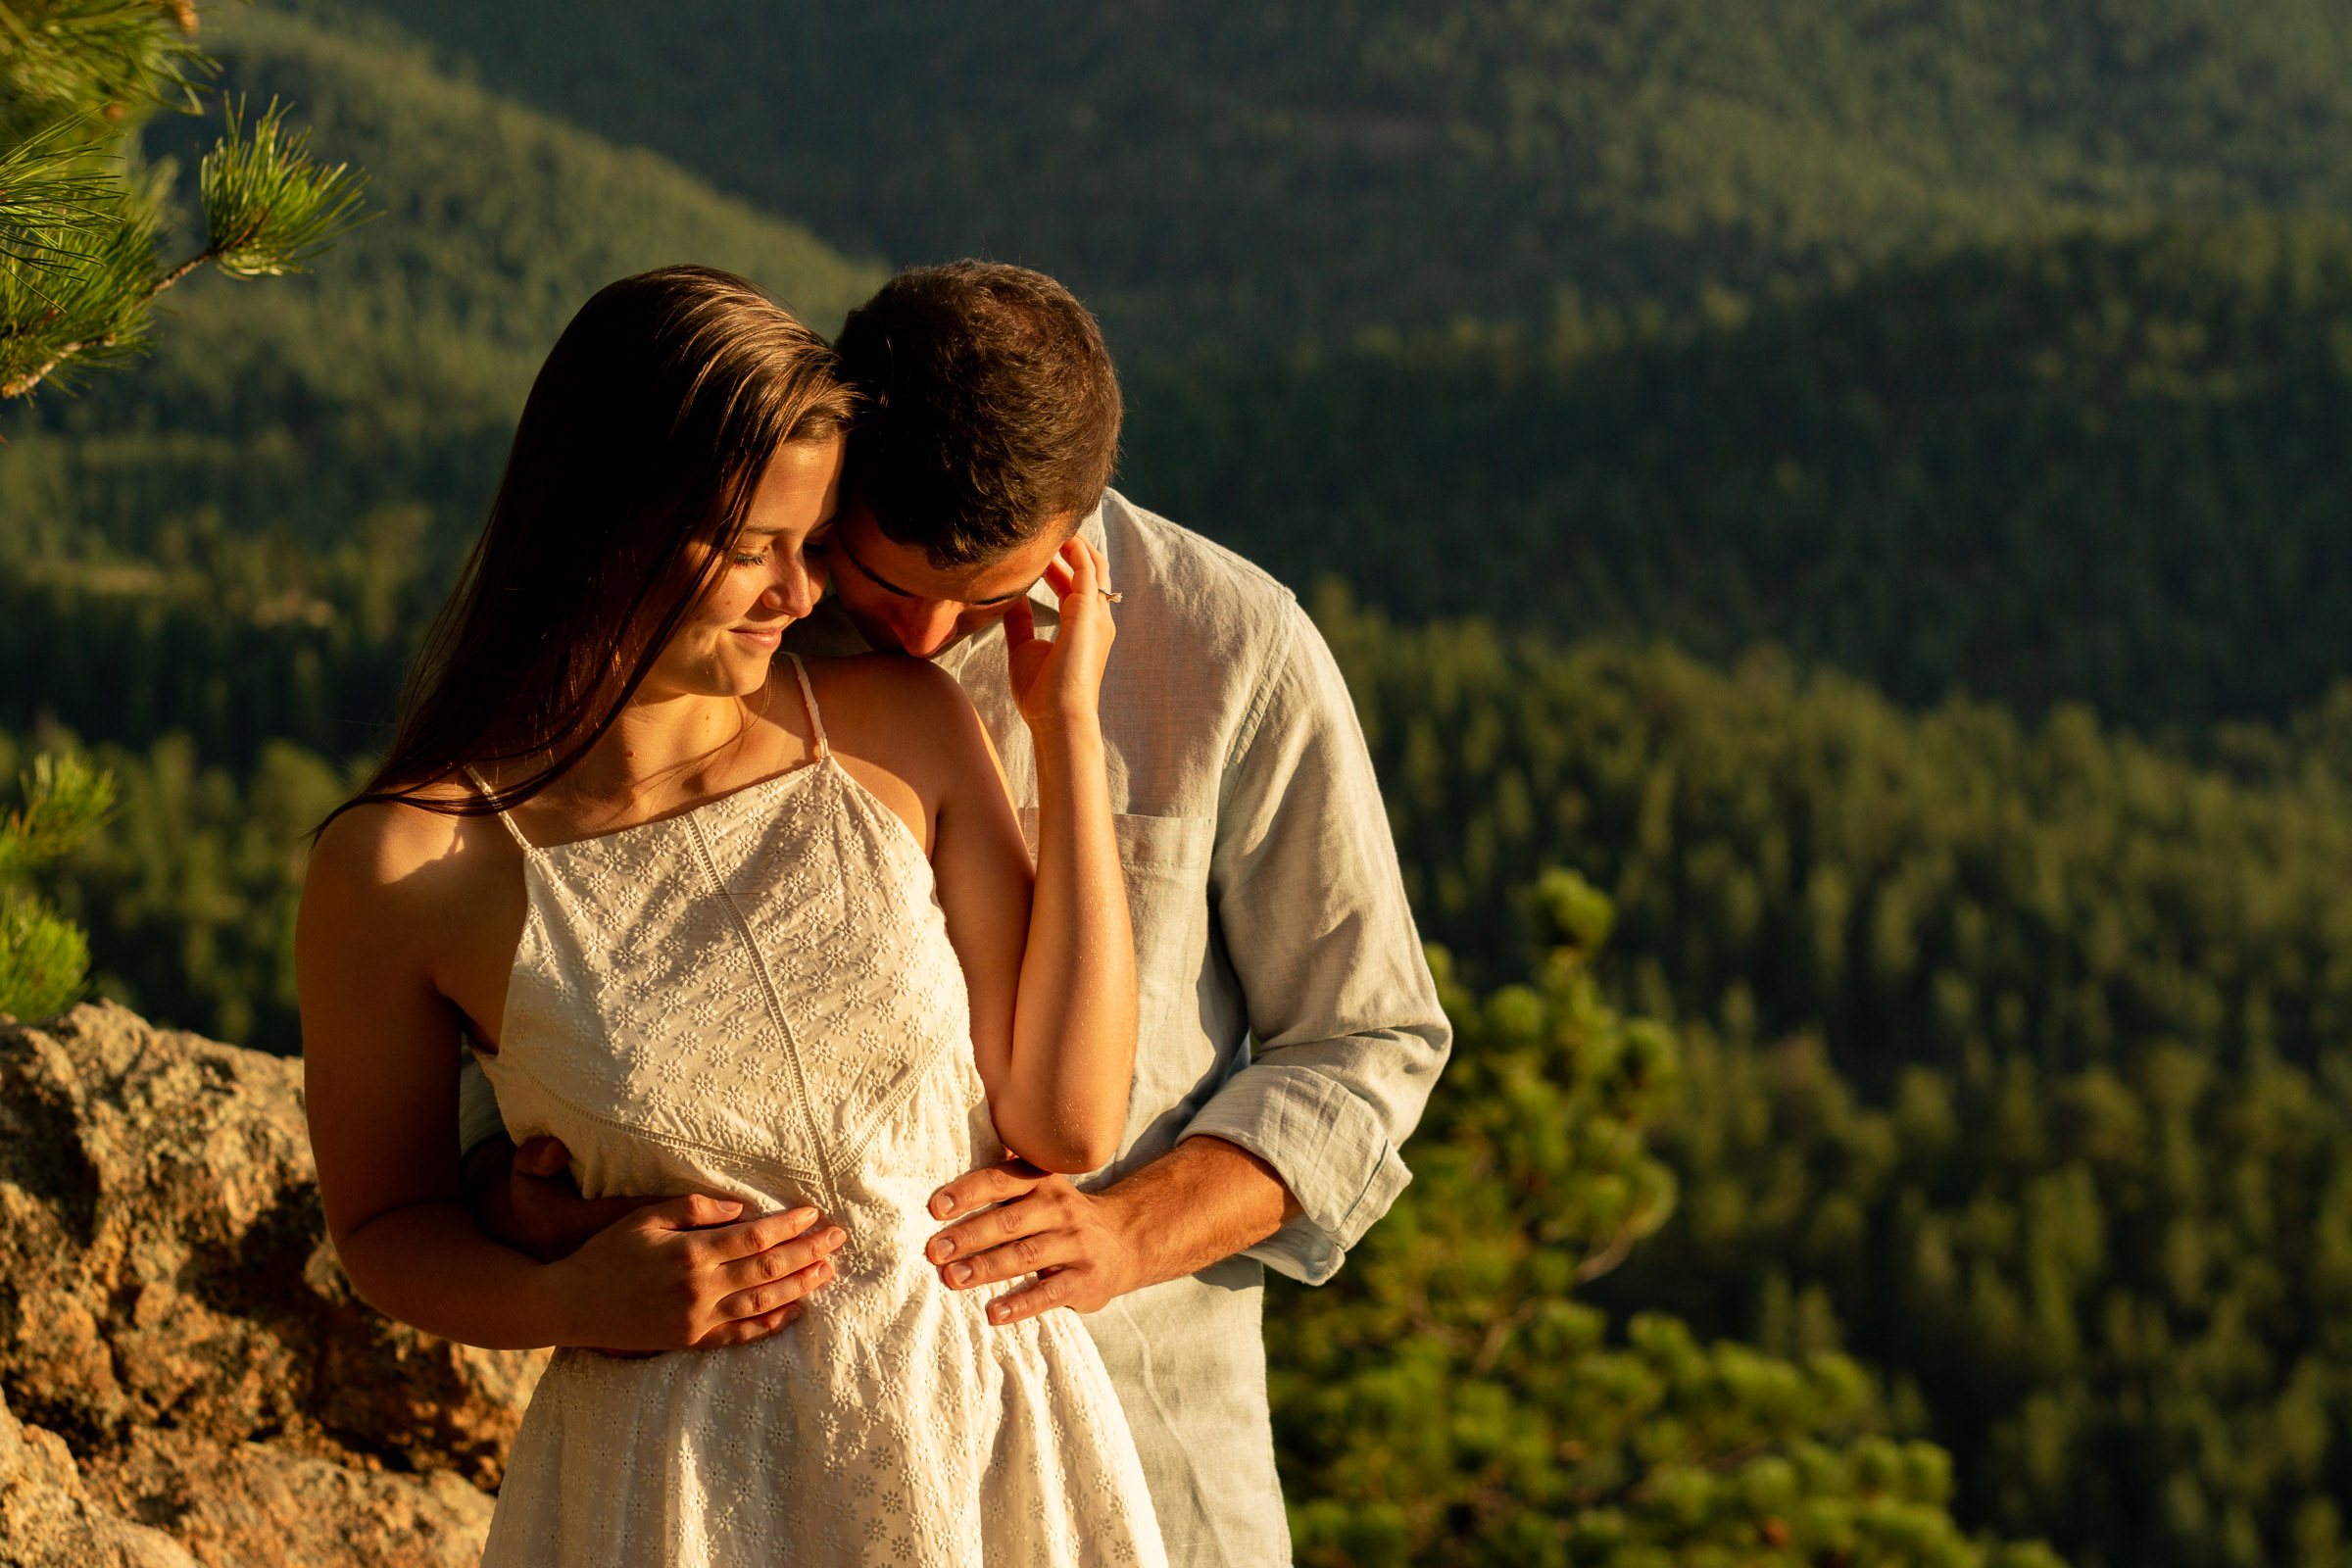 An engaged couple soaking in each others presence in the harsh afternoon light outside on a mountain. Photo by Gabby Jockers Photography. Colorado engagement photography, Colorado engagement photos, Colorado engagement session, mountain engagement photos,mountain engagement session, mountain photography, hiking engagement session, summer engagement photos, wilderness, hiking, hiking engagement, adventure photos, adventure session, couples photos, evergreen co elopement, colorado elopement, sunset engagement photos